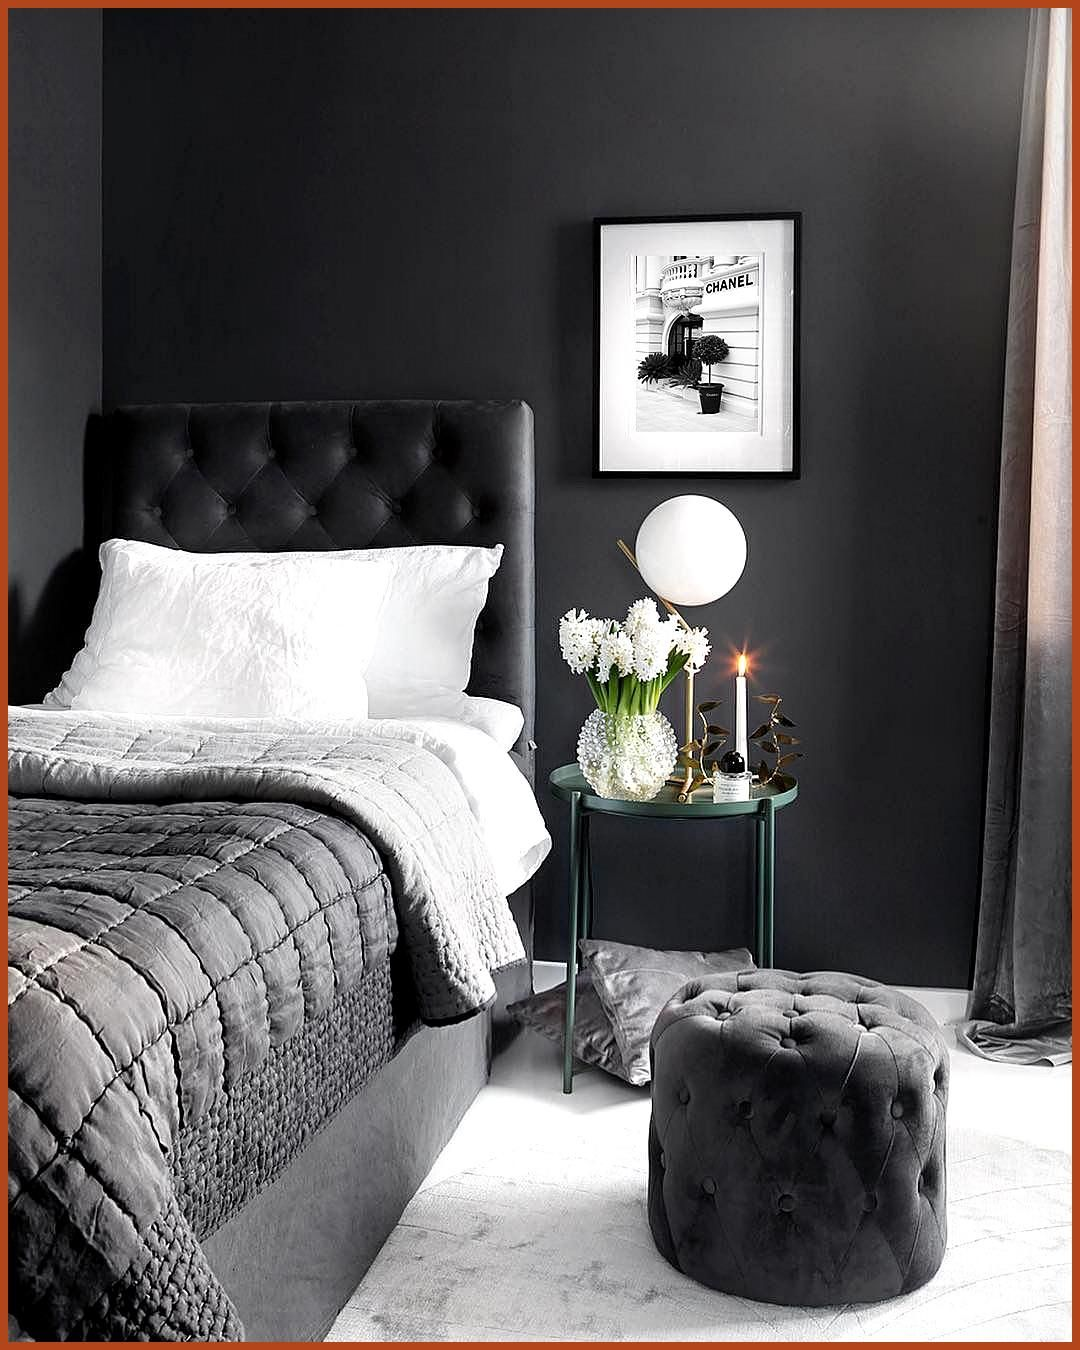 Graphite Grey Wall Bedroom almost black Black and white minimalist decor white flowers luxury interior single bedroom decor chic classy room contemporary modern decor white marble floor The Effective Pictures We Offer You About marble frame A quality picture can tell you many things You can find the most beautiful pictures that can be presented to you about marble rose in  hellip   #bedroom #black #graphite #whitemarbledecor #whitemarbleflooring